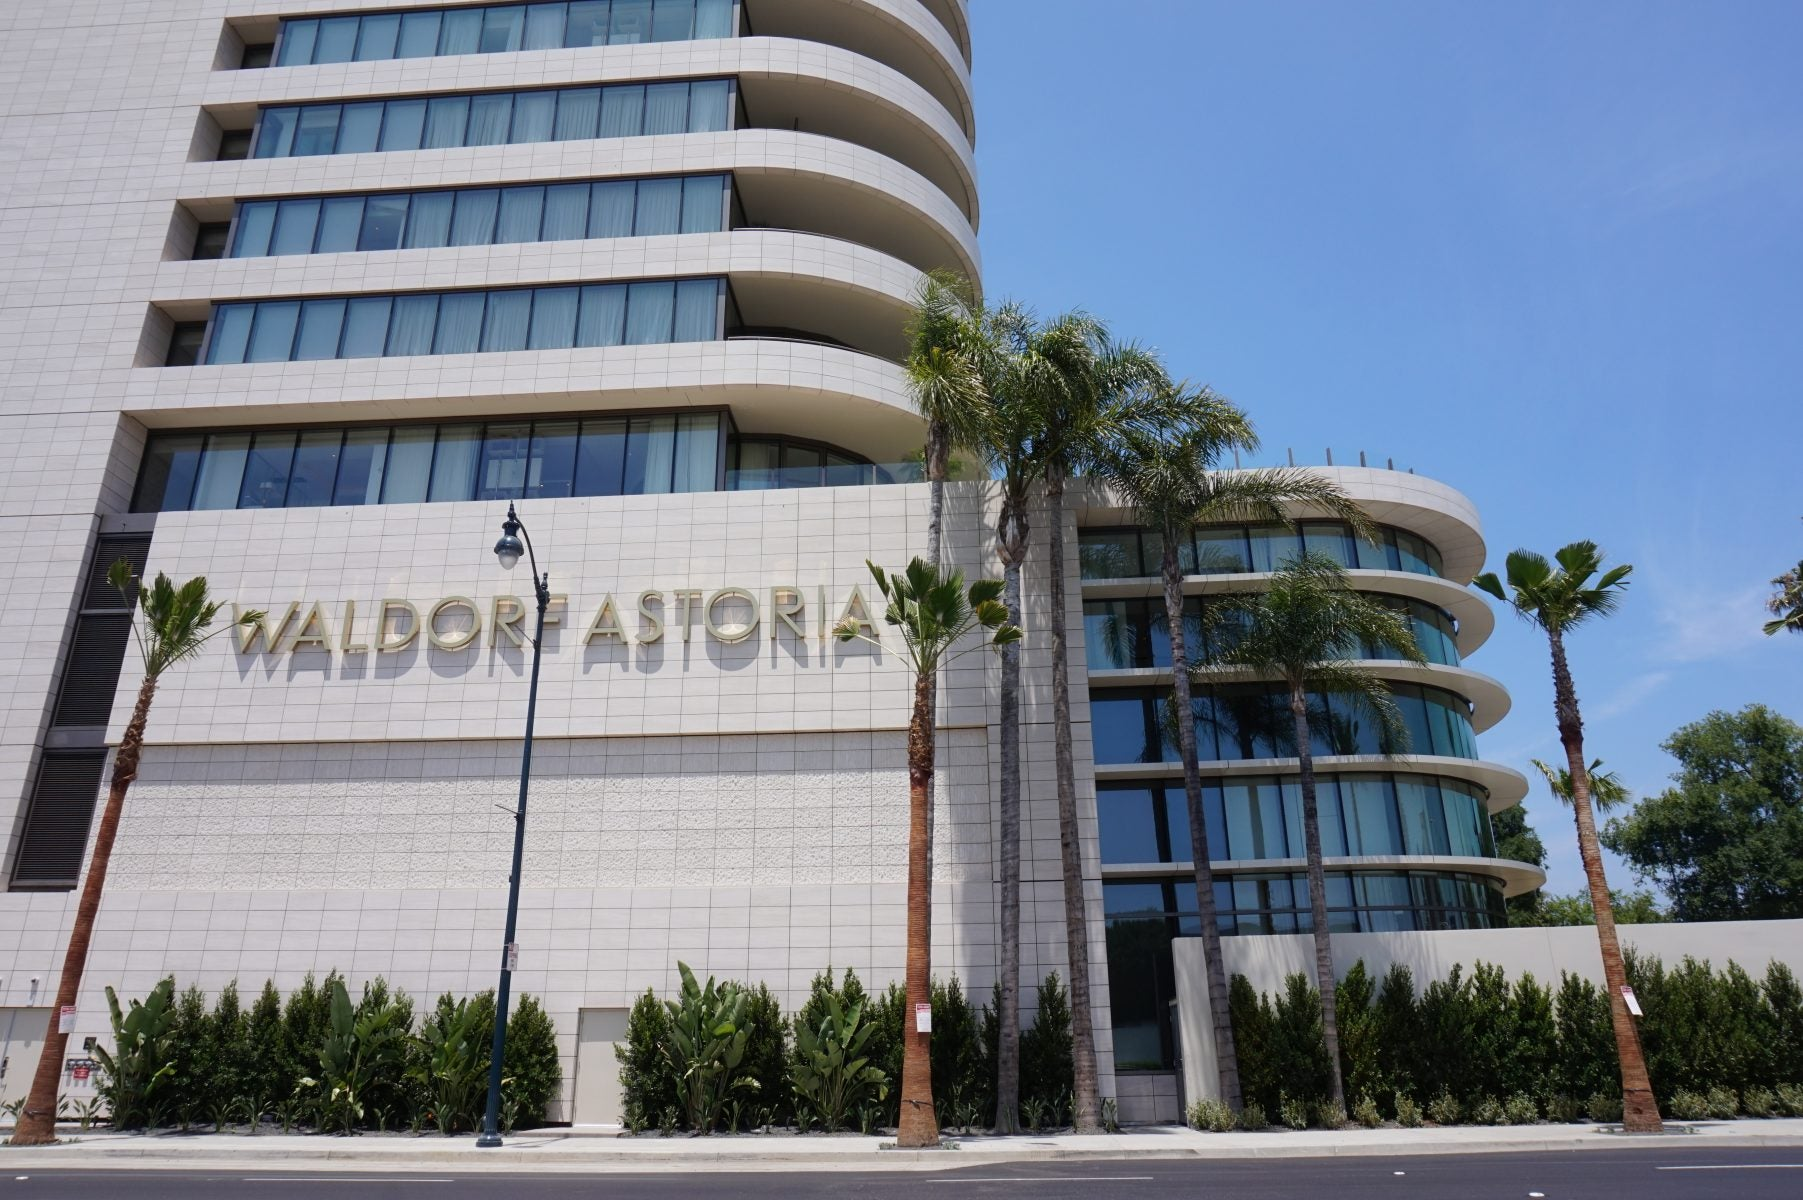 5 Top Hotels in the US You Can Book With Hilton Points — Use the Hilton Card Limited-Time Offers